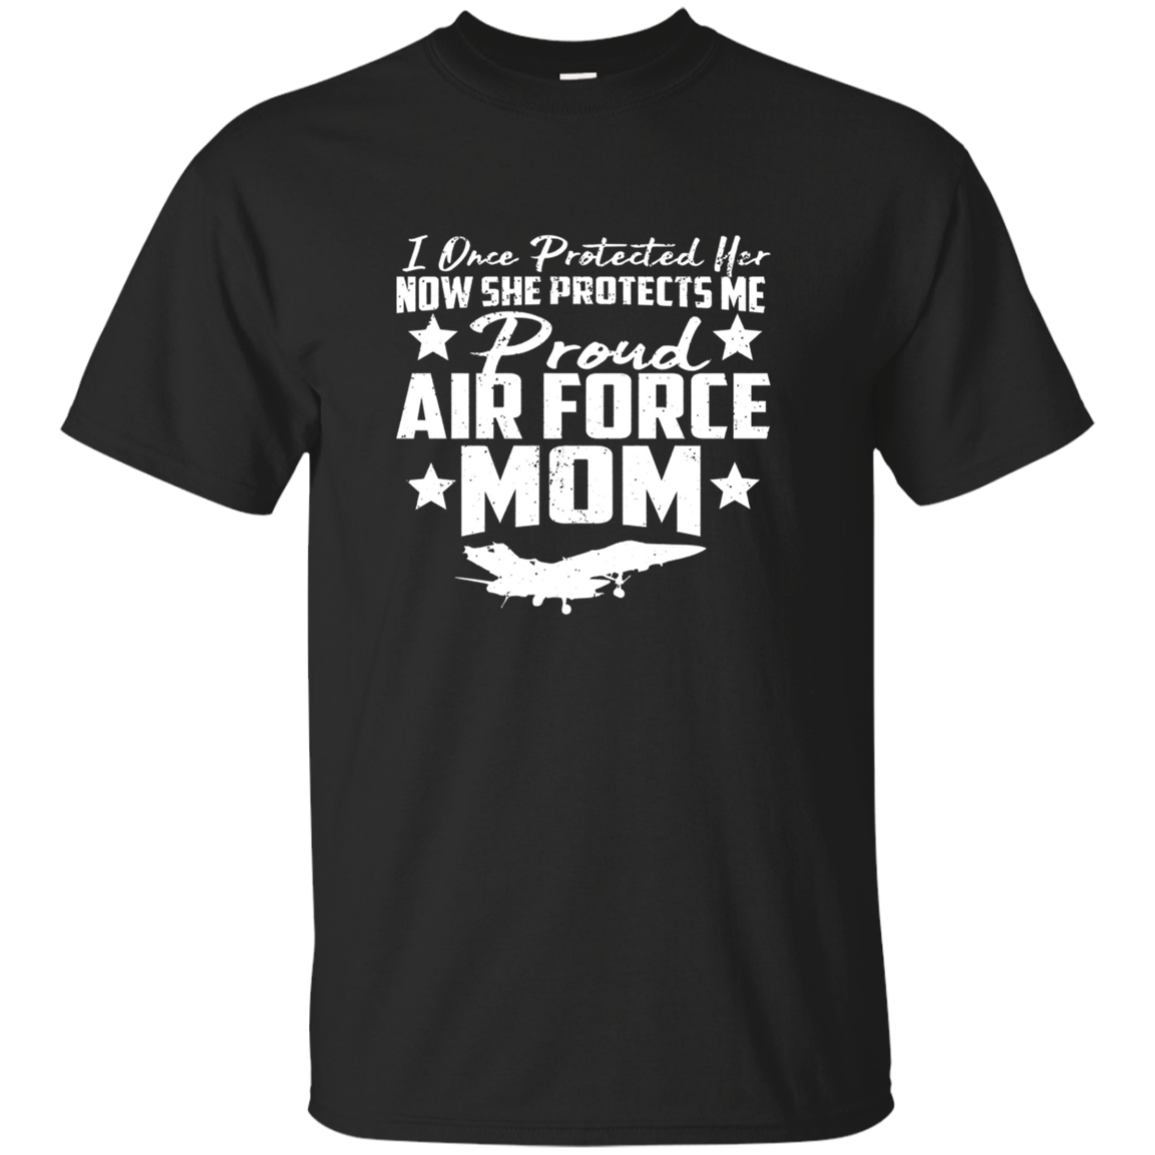 SHE PROTECTS ME Proud AIR FORCE MOM Long Sleeve T-shirt